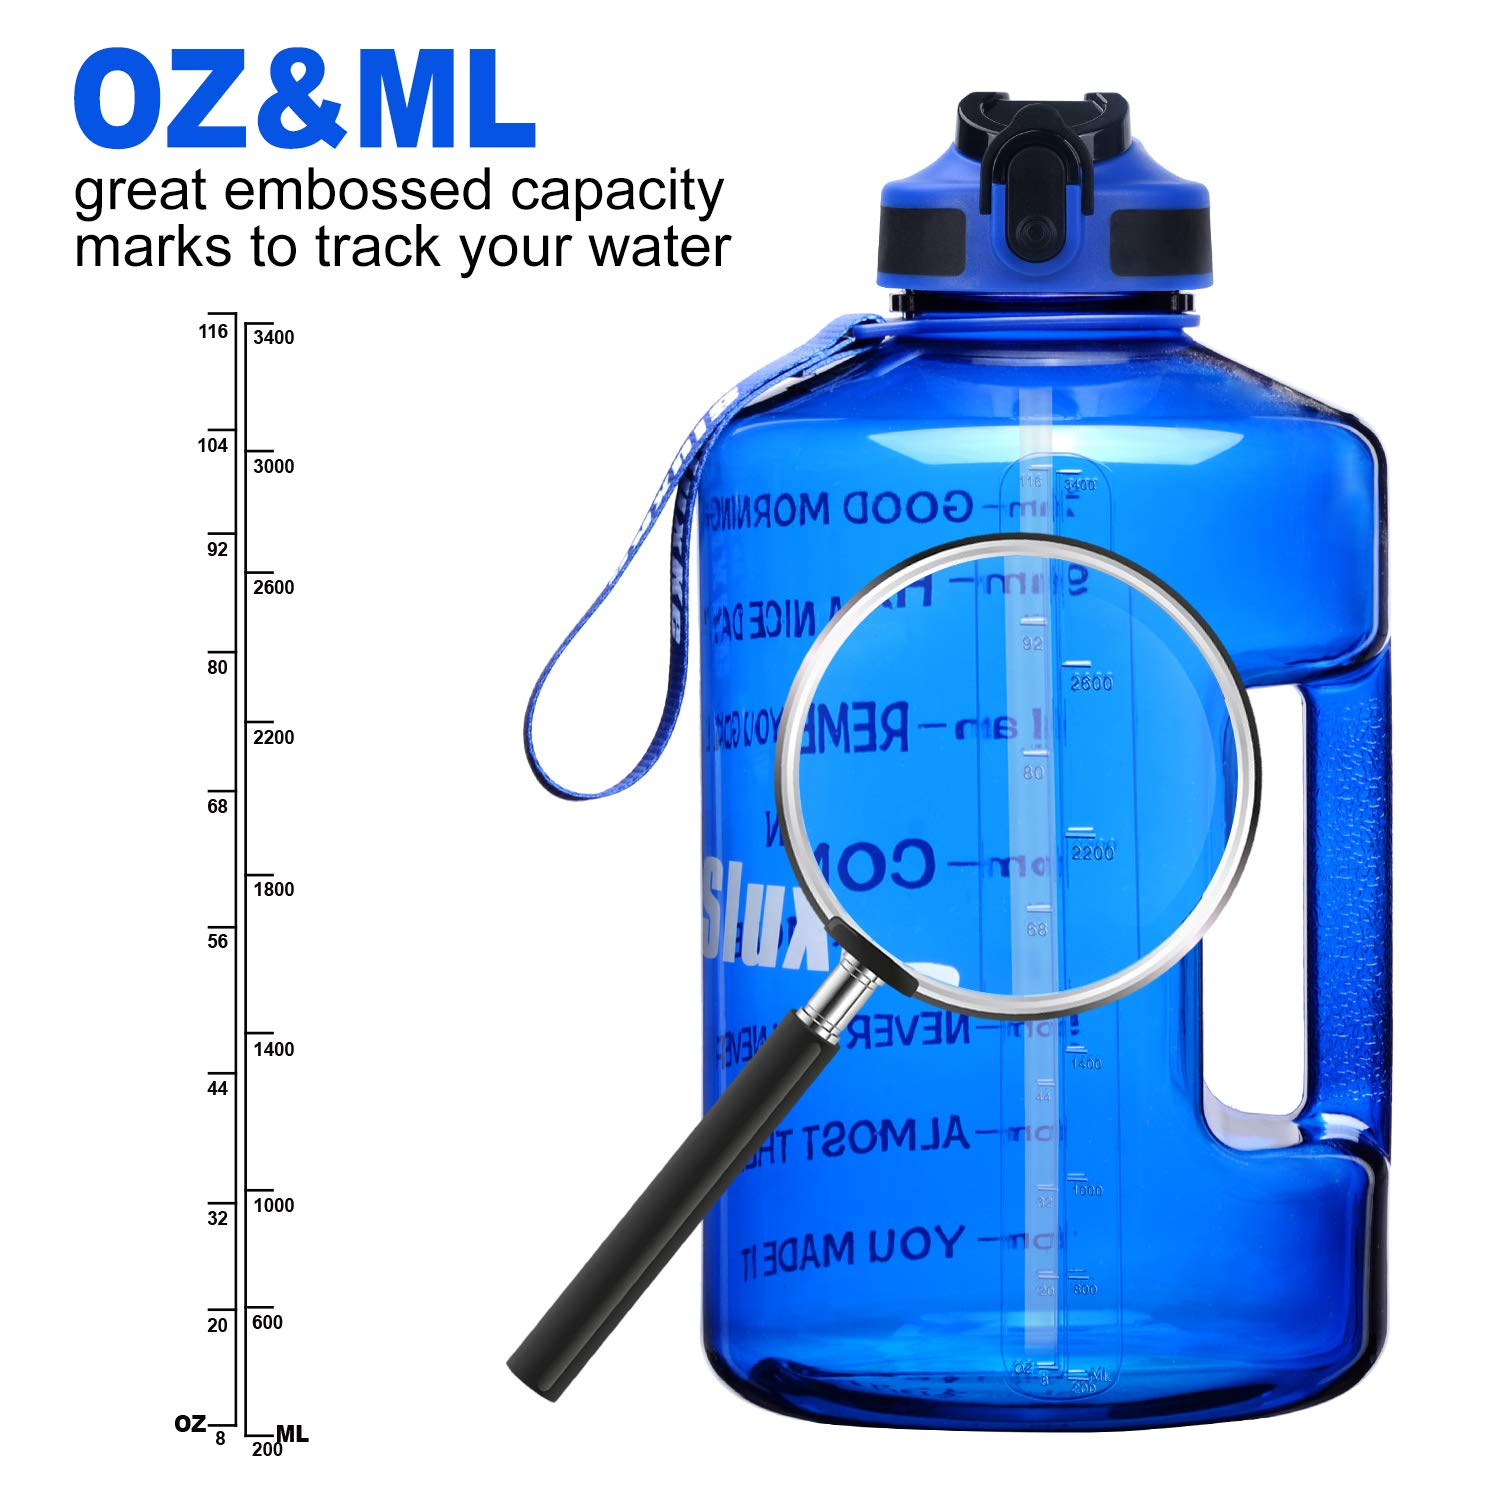 SLUXKE 2.2L Half Gallon Water Bottle with Pop Up Straw and Motivational Time Marker,Wide Mouth,Locking Flip-Flop Lid,One Click Open,BPA Free Sports Water Jug,74oz Big Sports Bottle with Handle